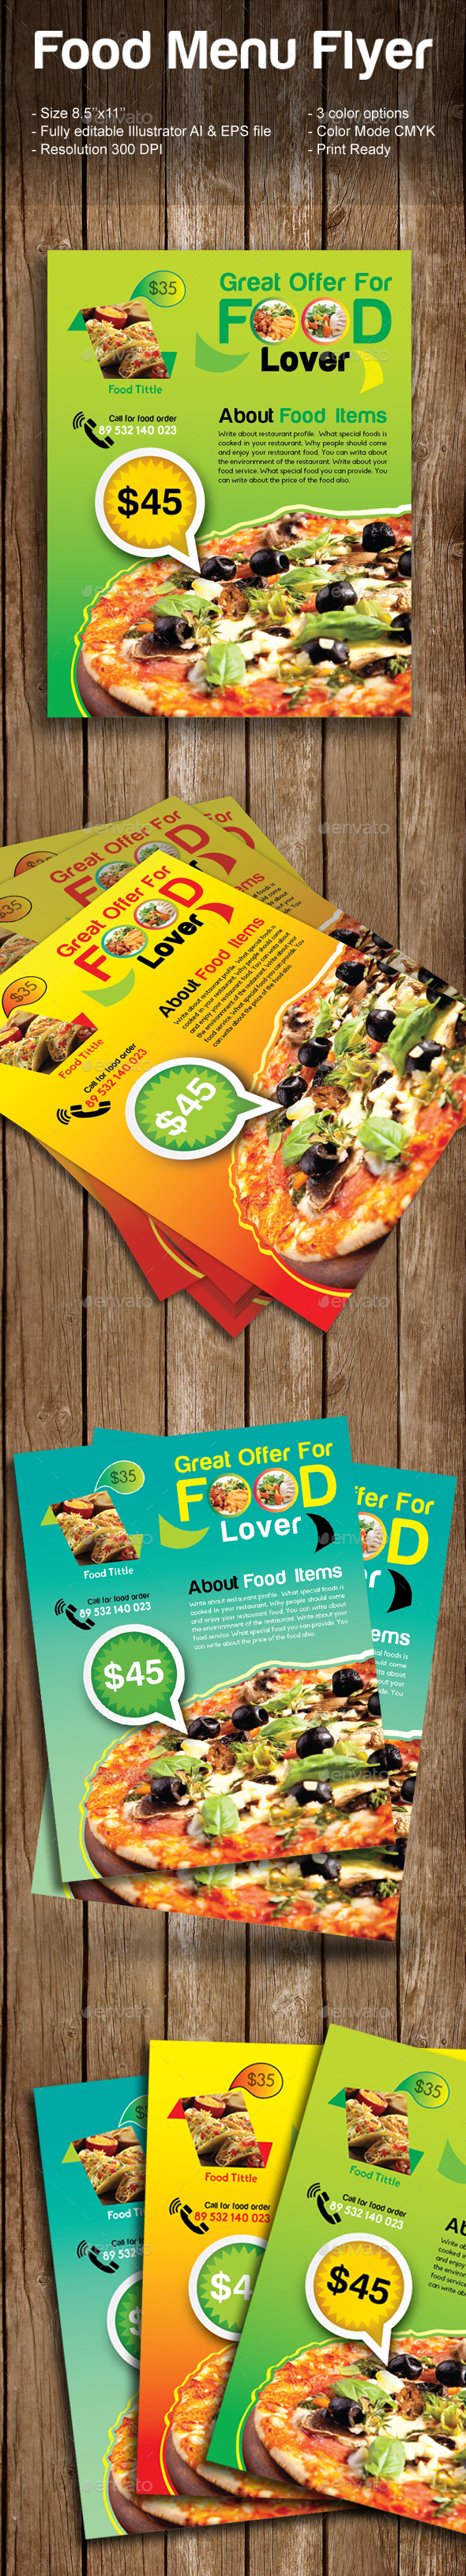 Food Menu Flyer